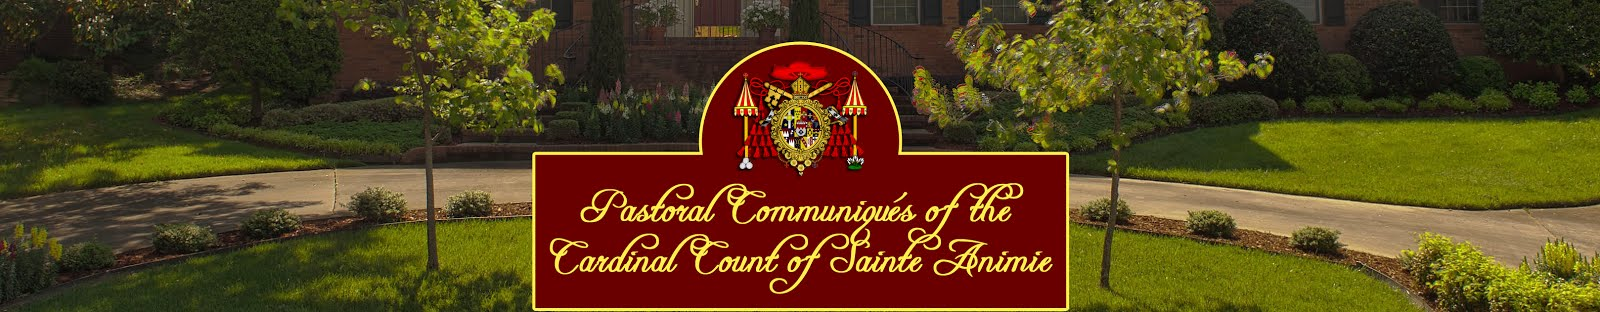 Pastoral Communiqués of Rutherford Cardinal Johnson, Count of Sainte Animie